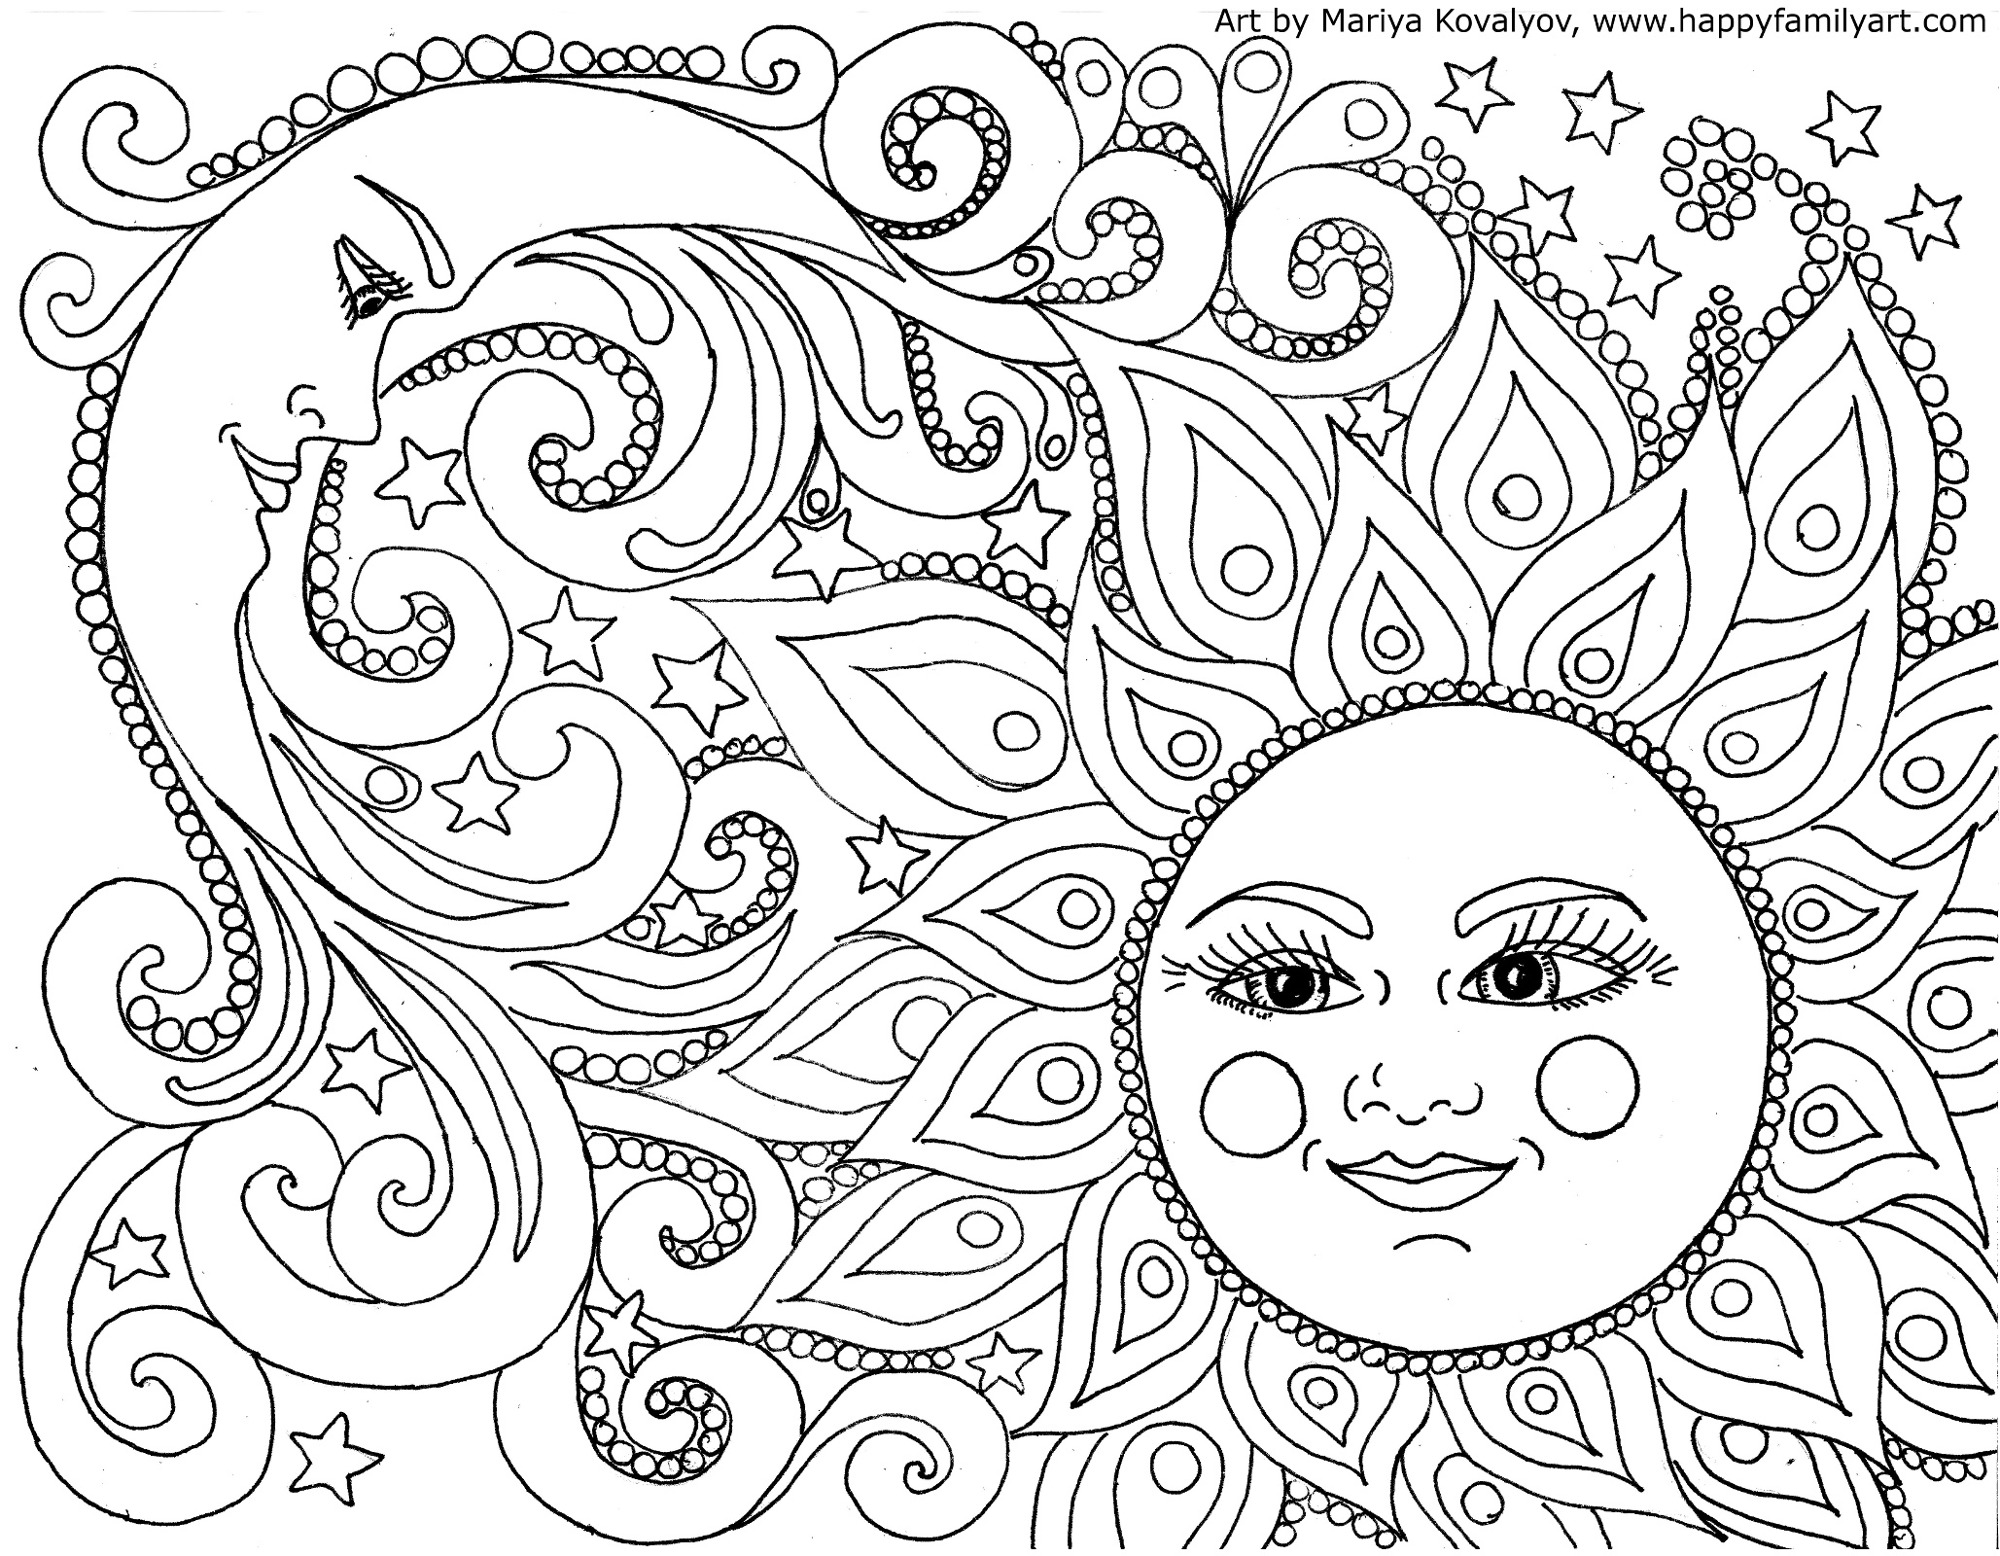 Uncategorized Coloring Ages happy family art original and fun coloring pages